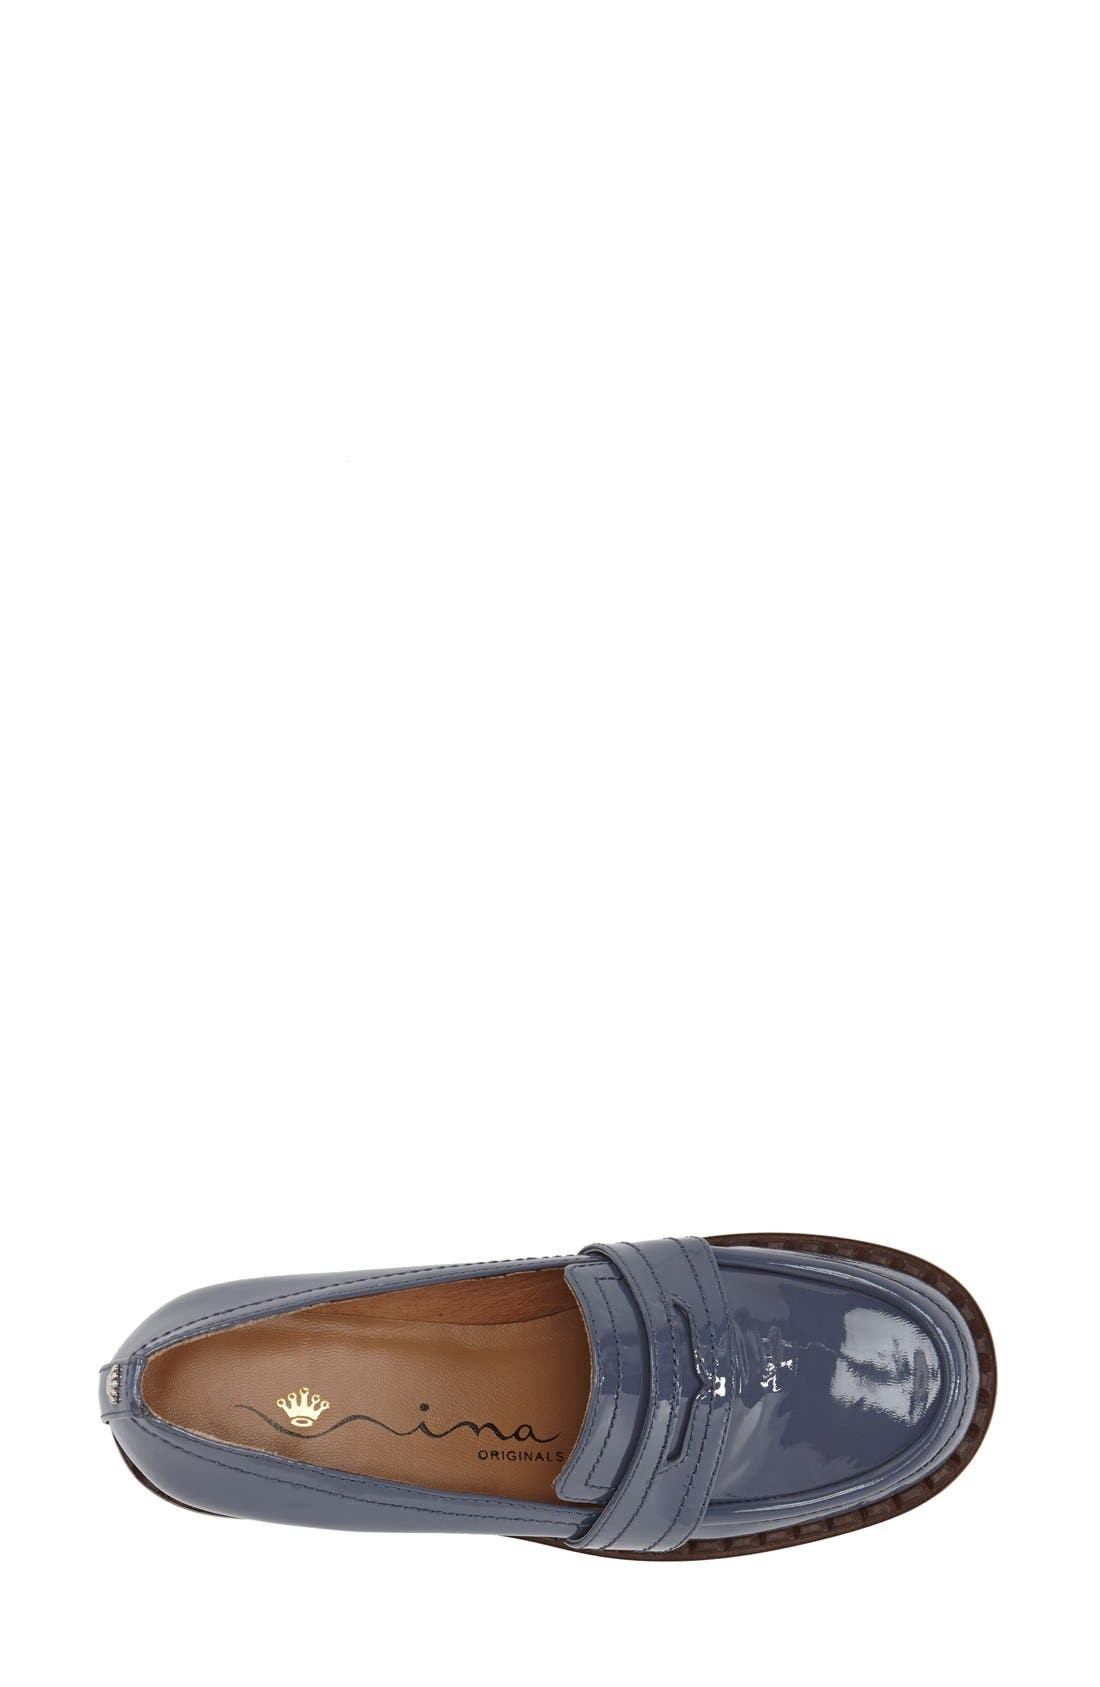 'Mystique' Penny Loafer,                             Alternate thumbnail 3, color,                             405